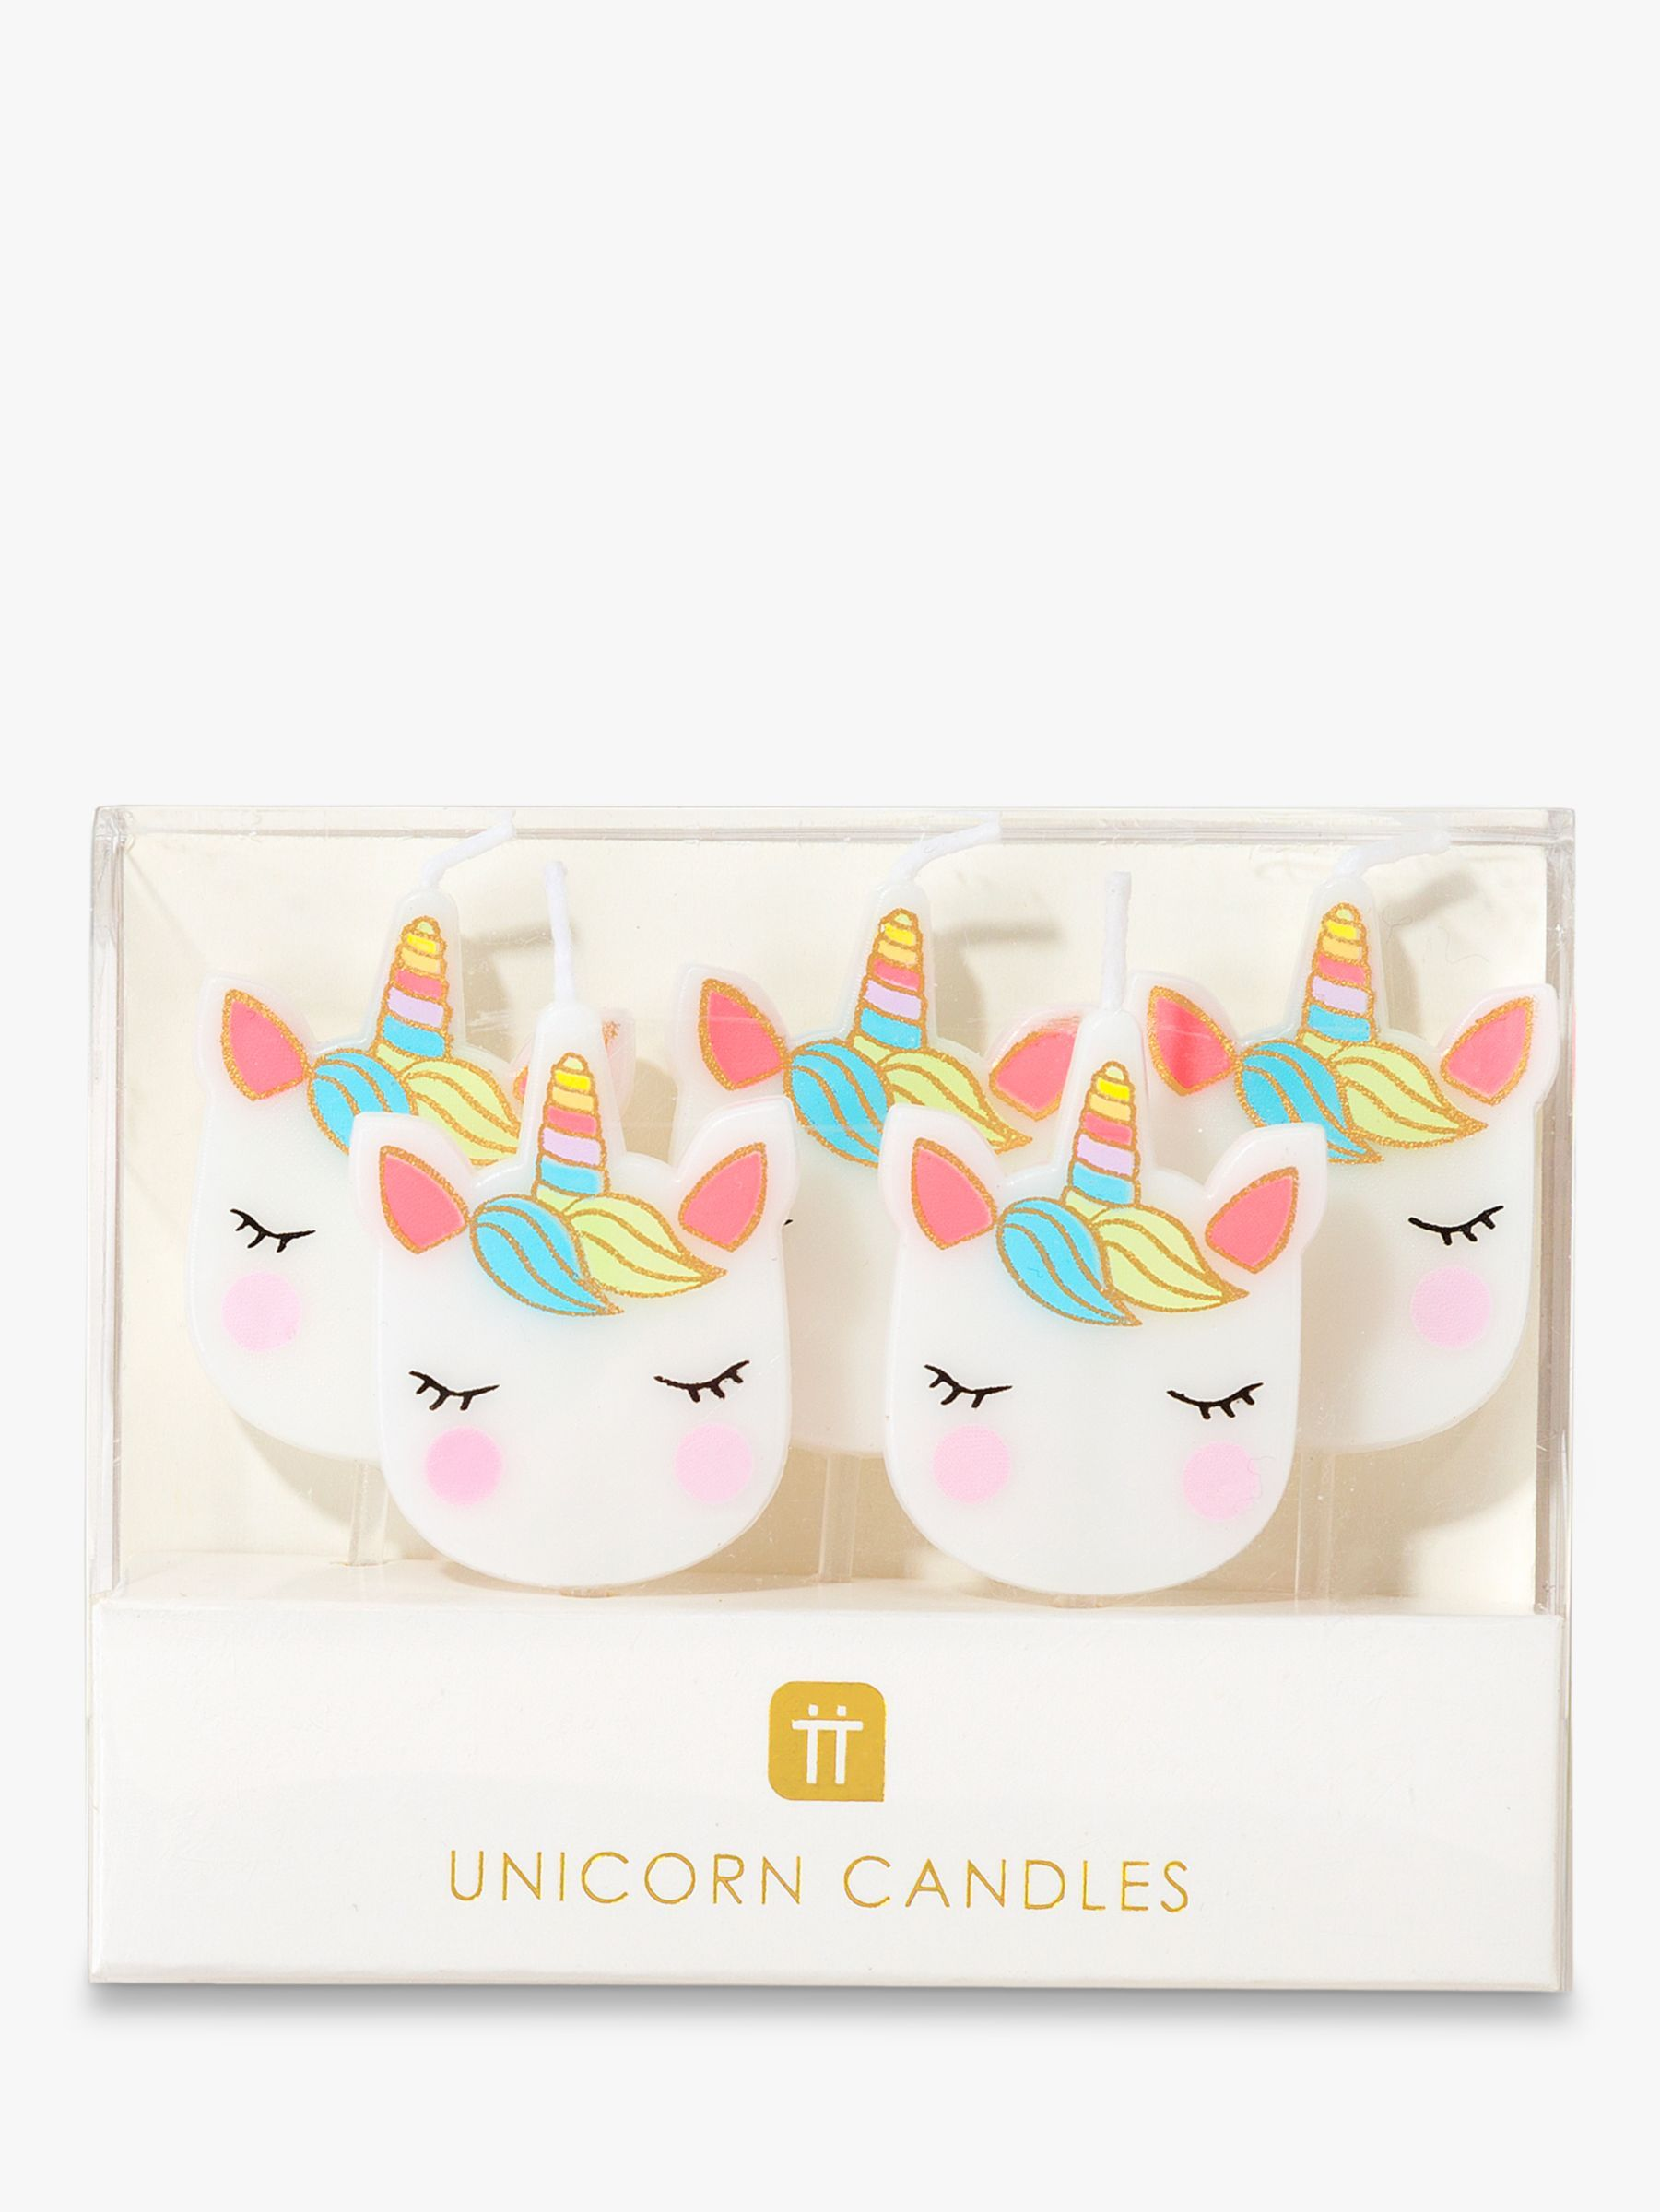 Talking Tables Unicorn Birthday Candles, Pack of 5 - Unicorn birthday, Birthday candles, Unicorn birthday parties, Unicorn candle, Birthday, Candles - Buy Talking Tables Unicorn Birthday Candles, Pack of 5 from our Sparklers, Candles, Crackers & Poppers range at John Lewis & Partners  Free Delivery on orders over £50